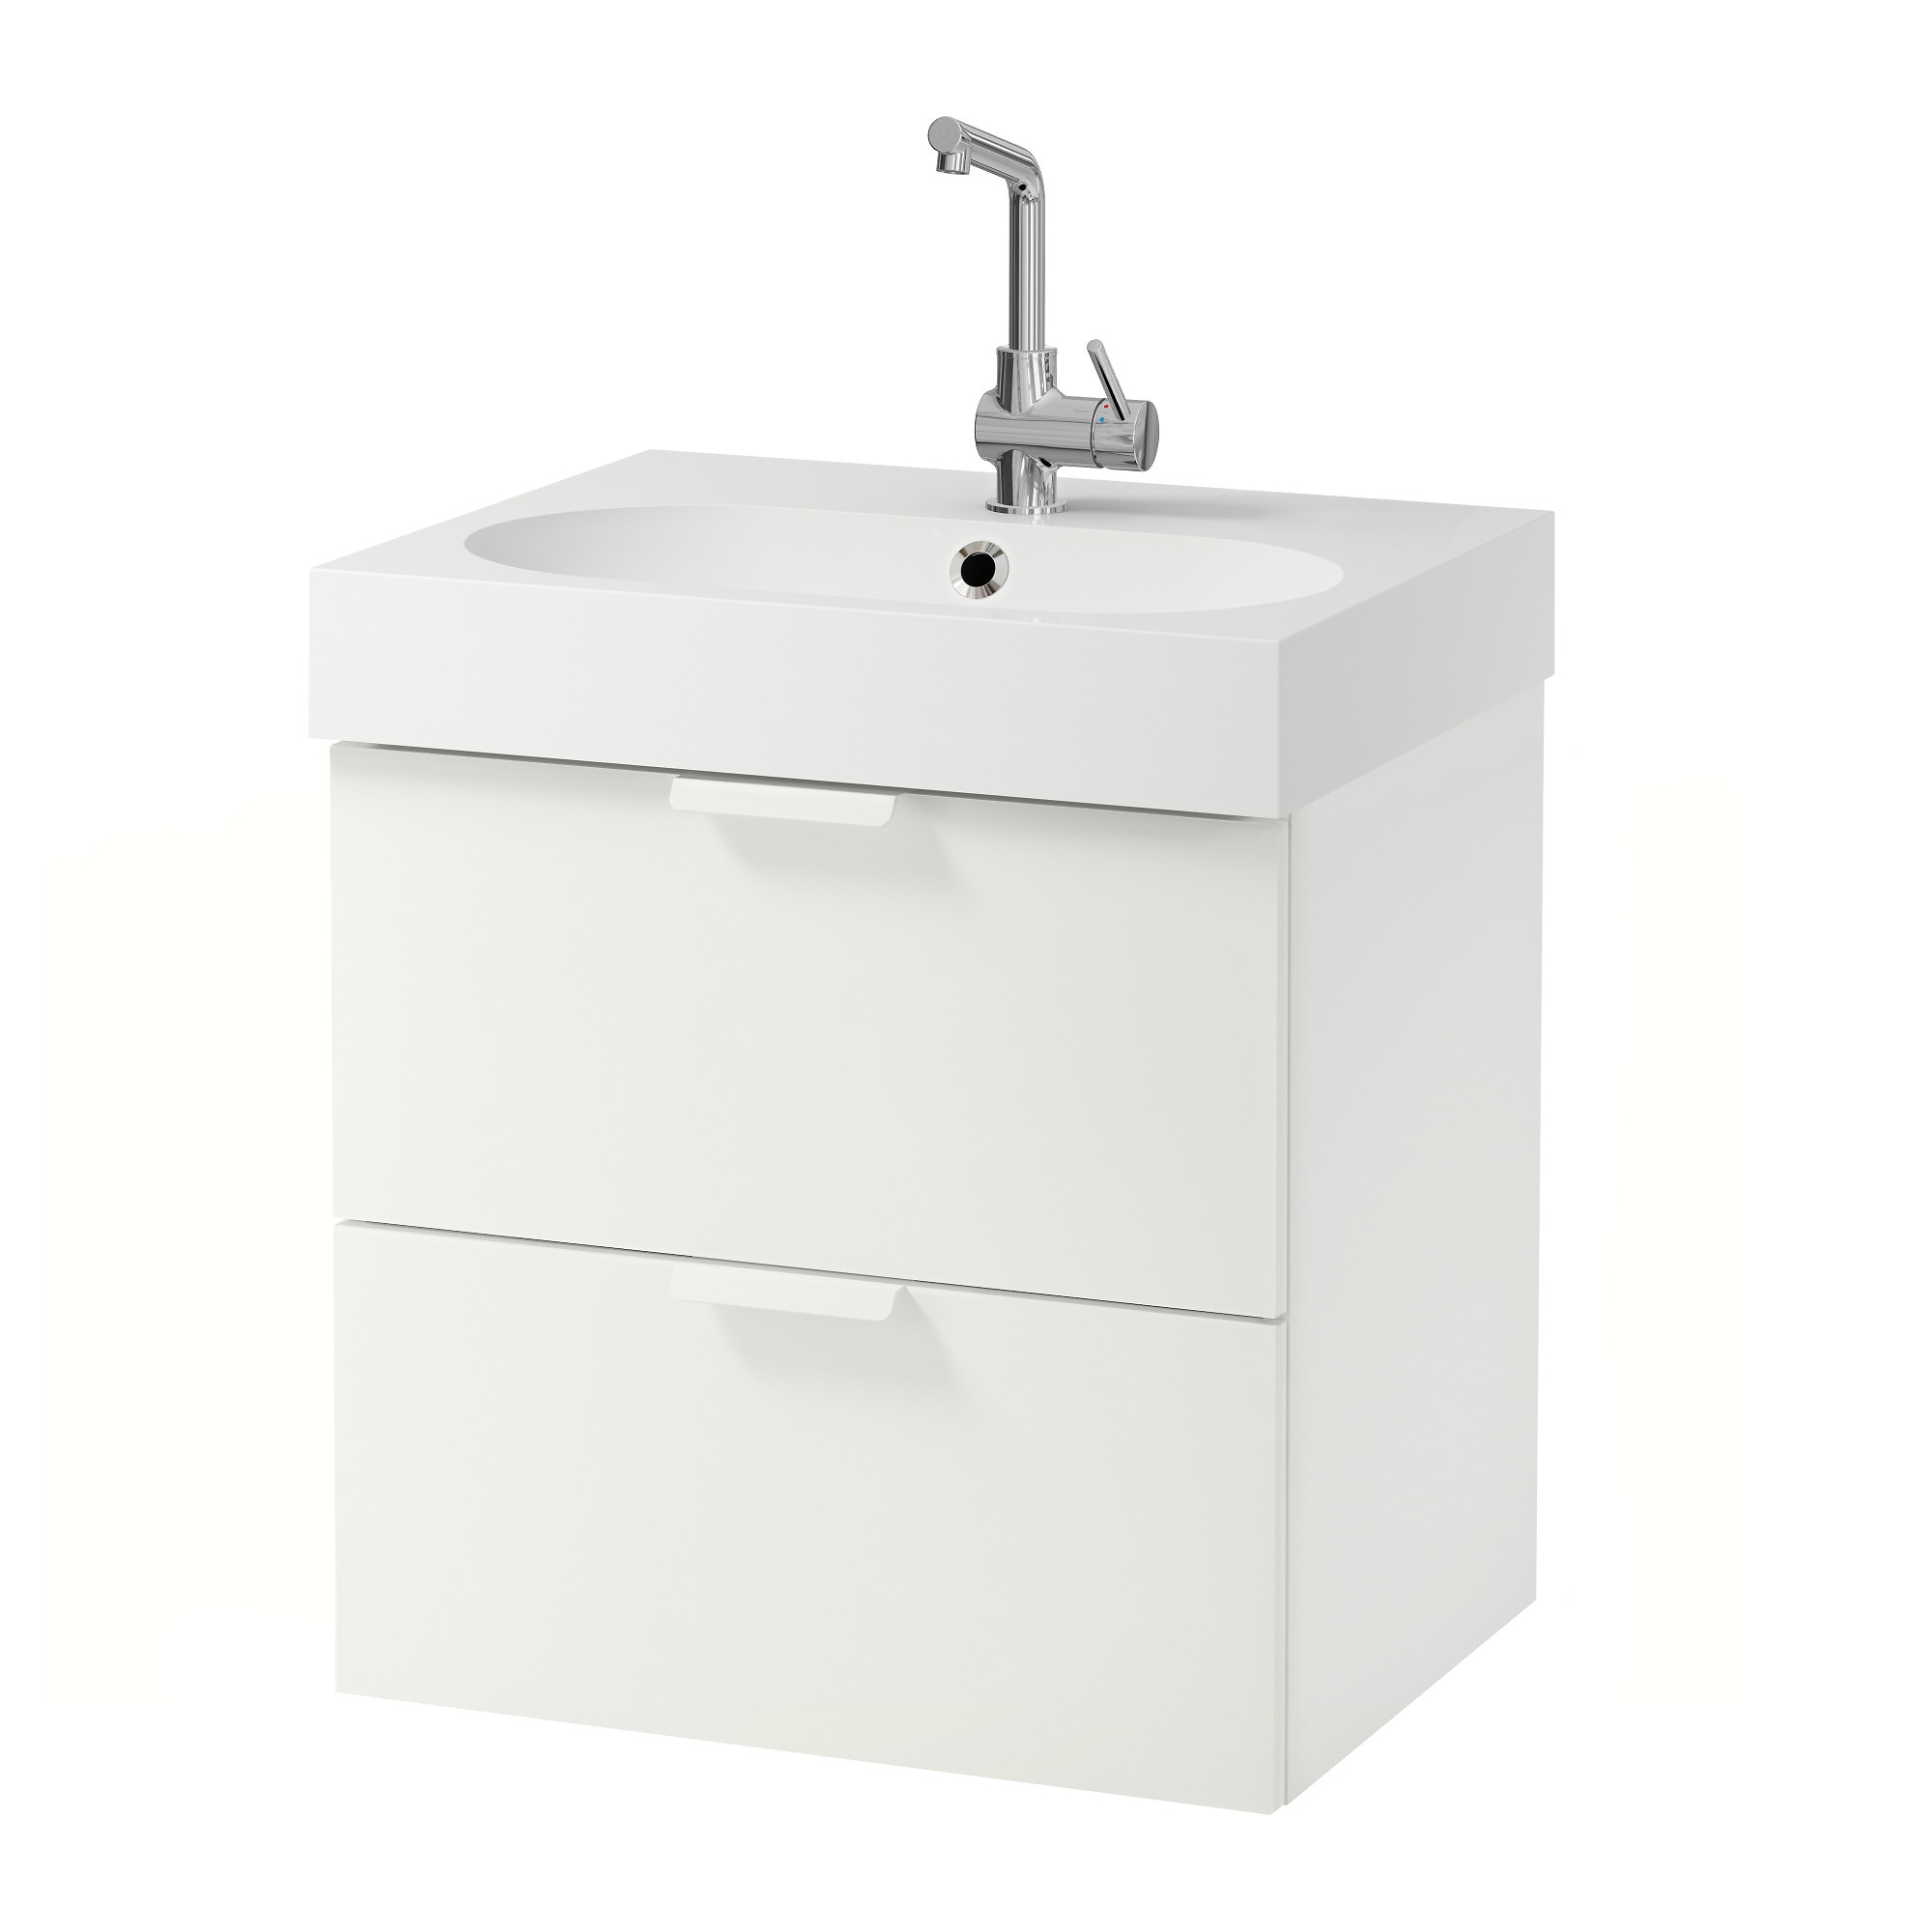 Design Sink Cabinets godmorgon sink cabinet with 2 drawers white ikea